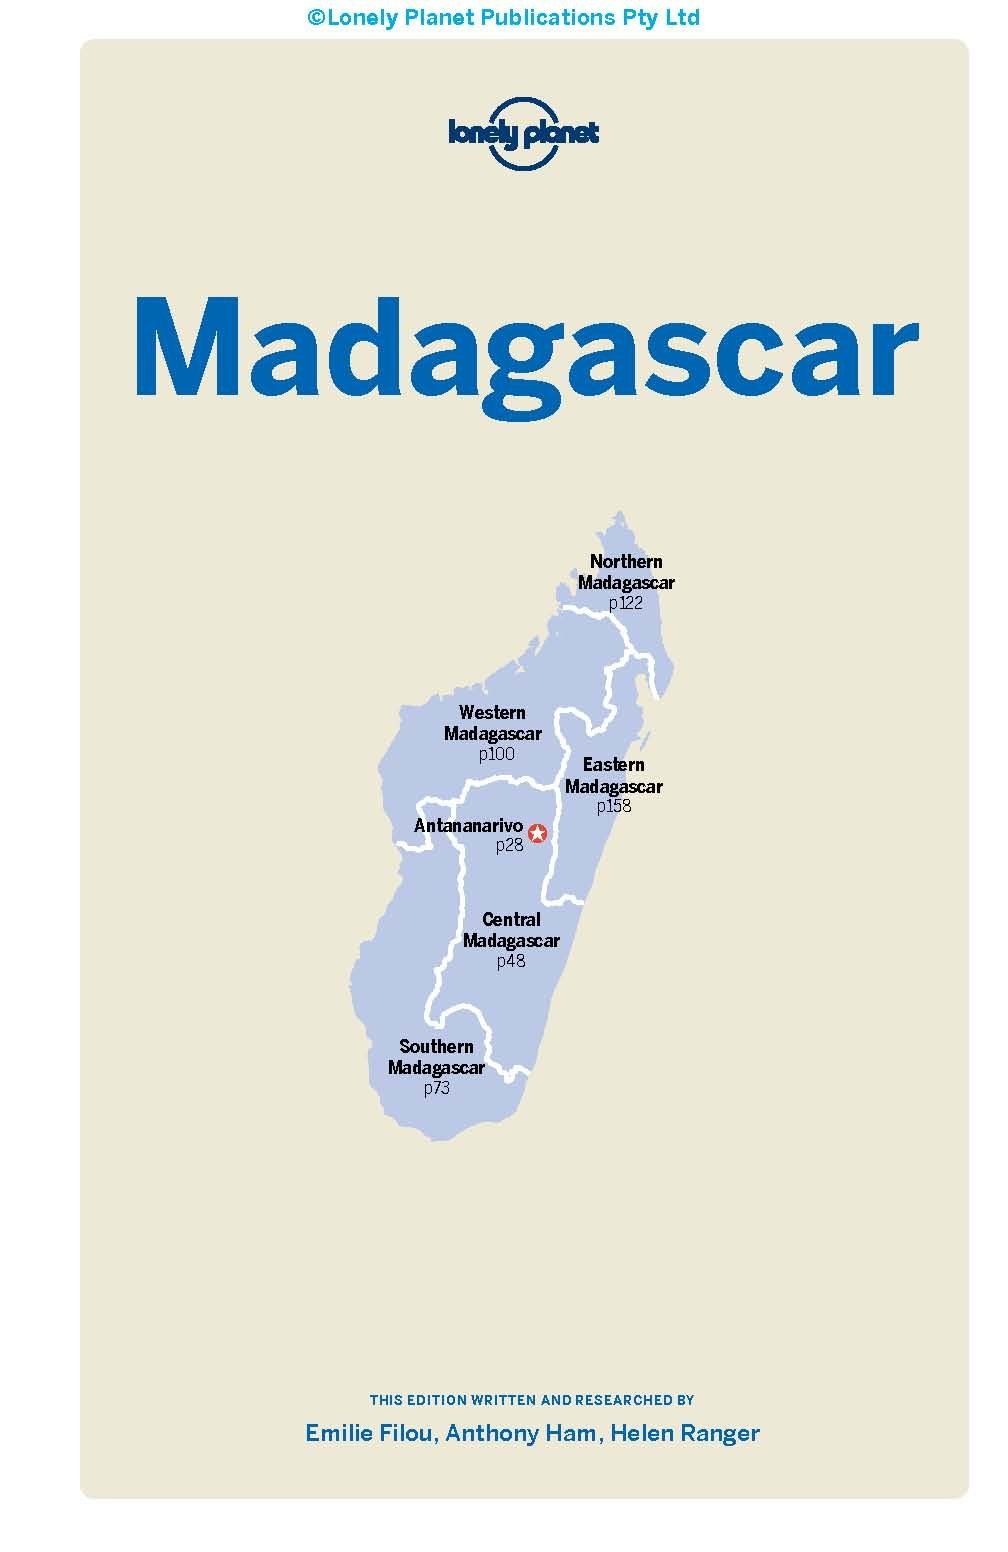 Lonely Planet Madagascar (Travel Guide): Lonely Planet ... on map of northern oceans, map of northern thailand, map of northern europe, map of northern greenland, map of northern france, map of northern us & canada, map of northern russia, map of northern brazil, map of northern egypt, map of northern lebanon, map of northern yellowstone, map of northern uk, map of northern south america, map of northern fiji, map of northern new guinea, map of northern jordan, map of northern saudi arabia, map of northern ukraine, map of northern caribbean, map of northern united states of america,